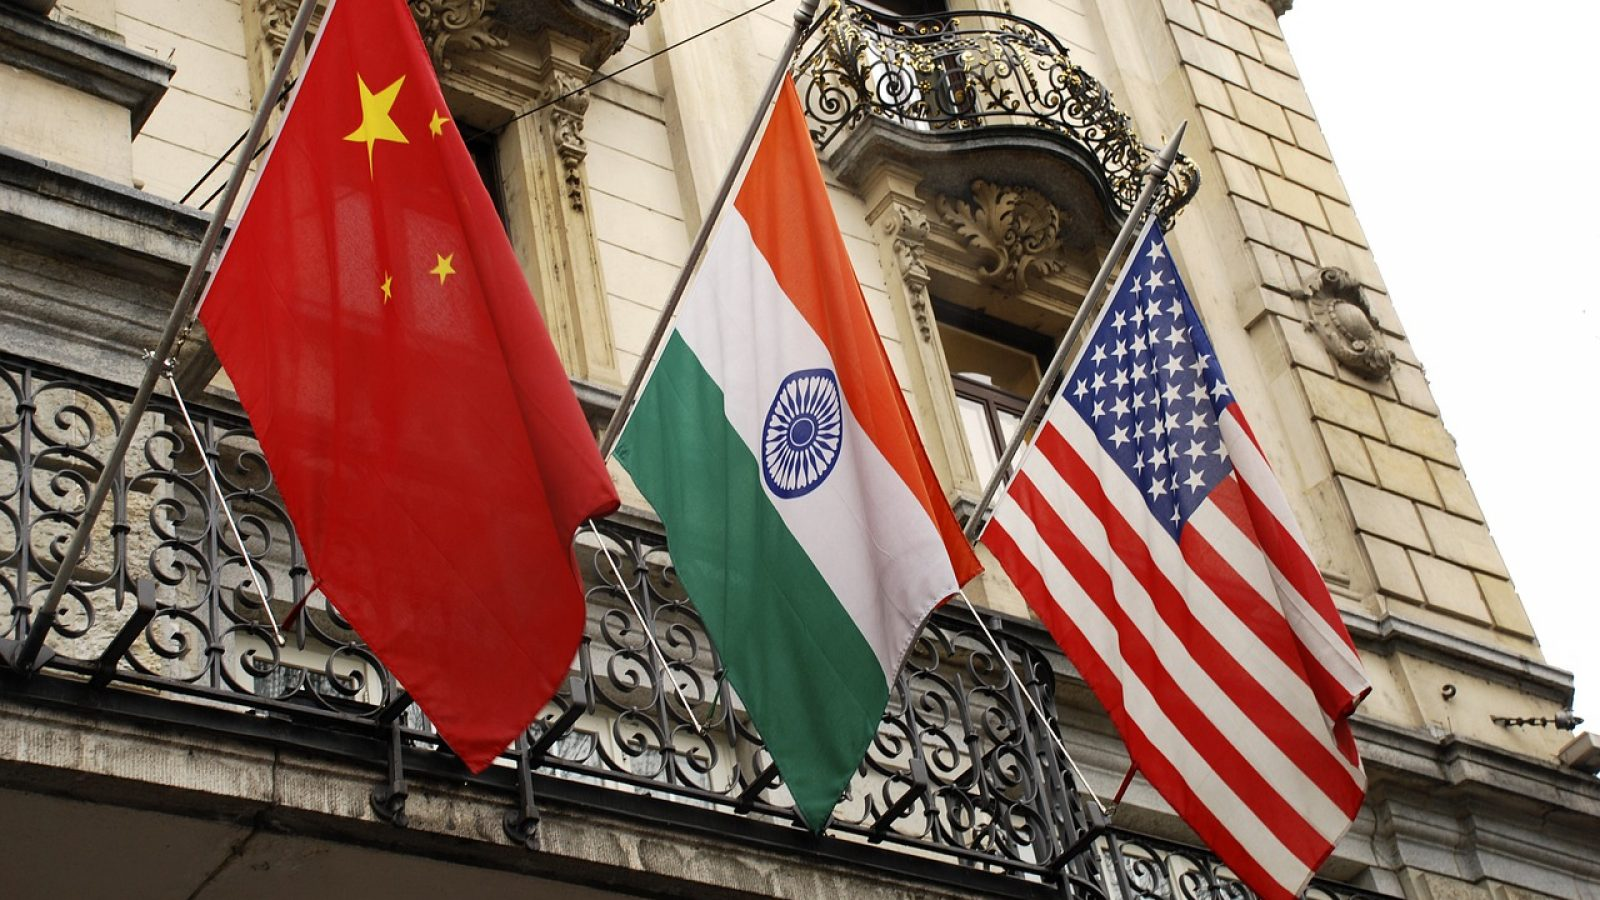 From left to right: the flag of China, India, and the United States